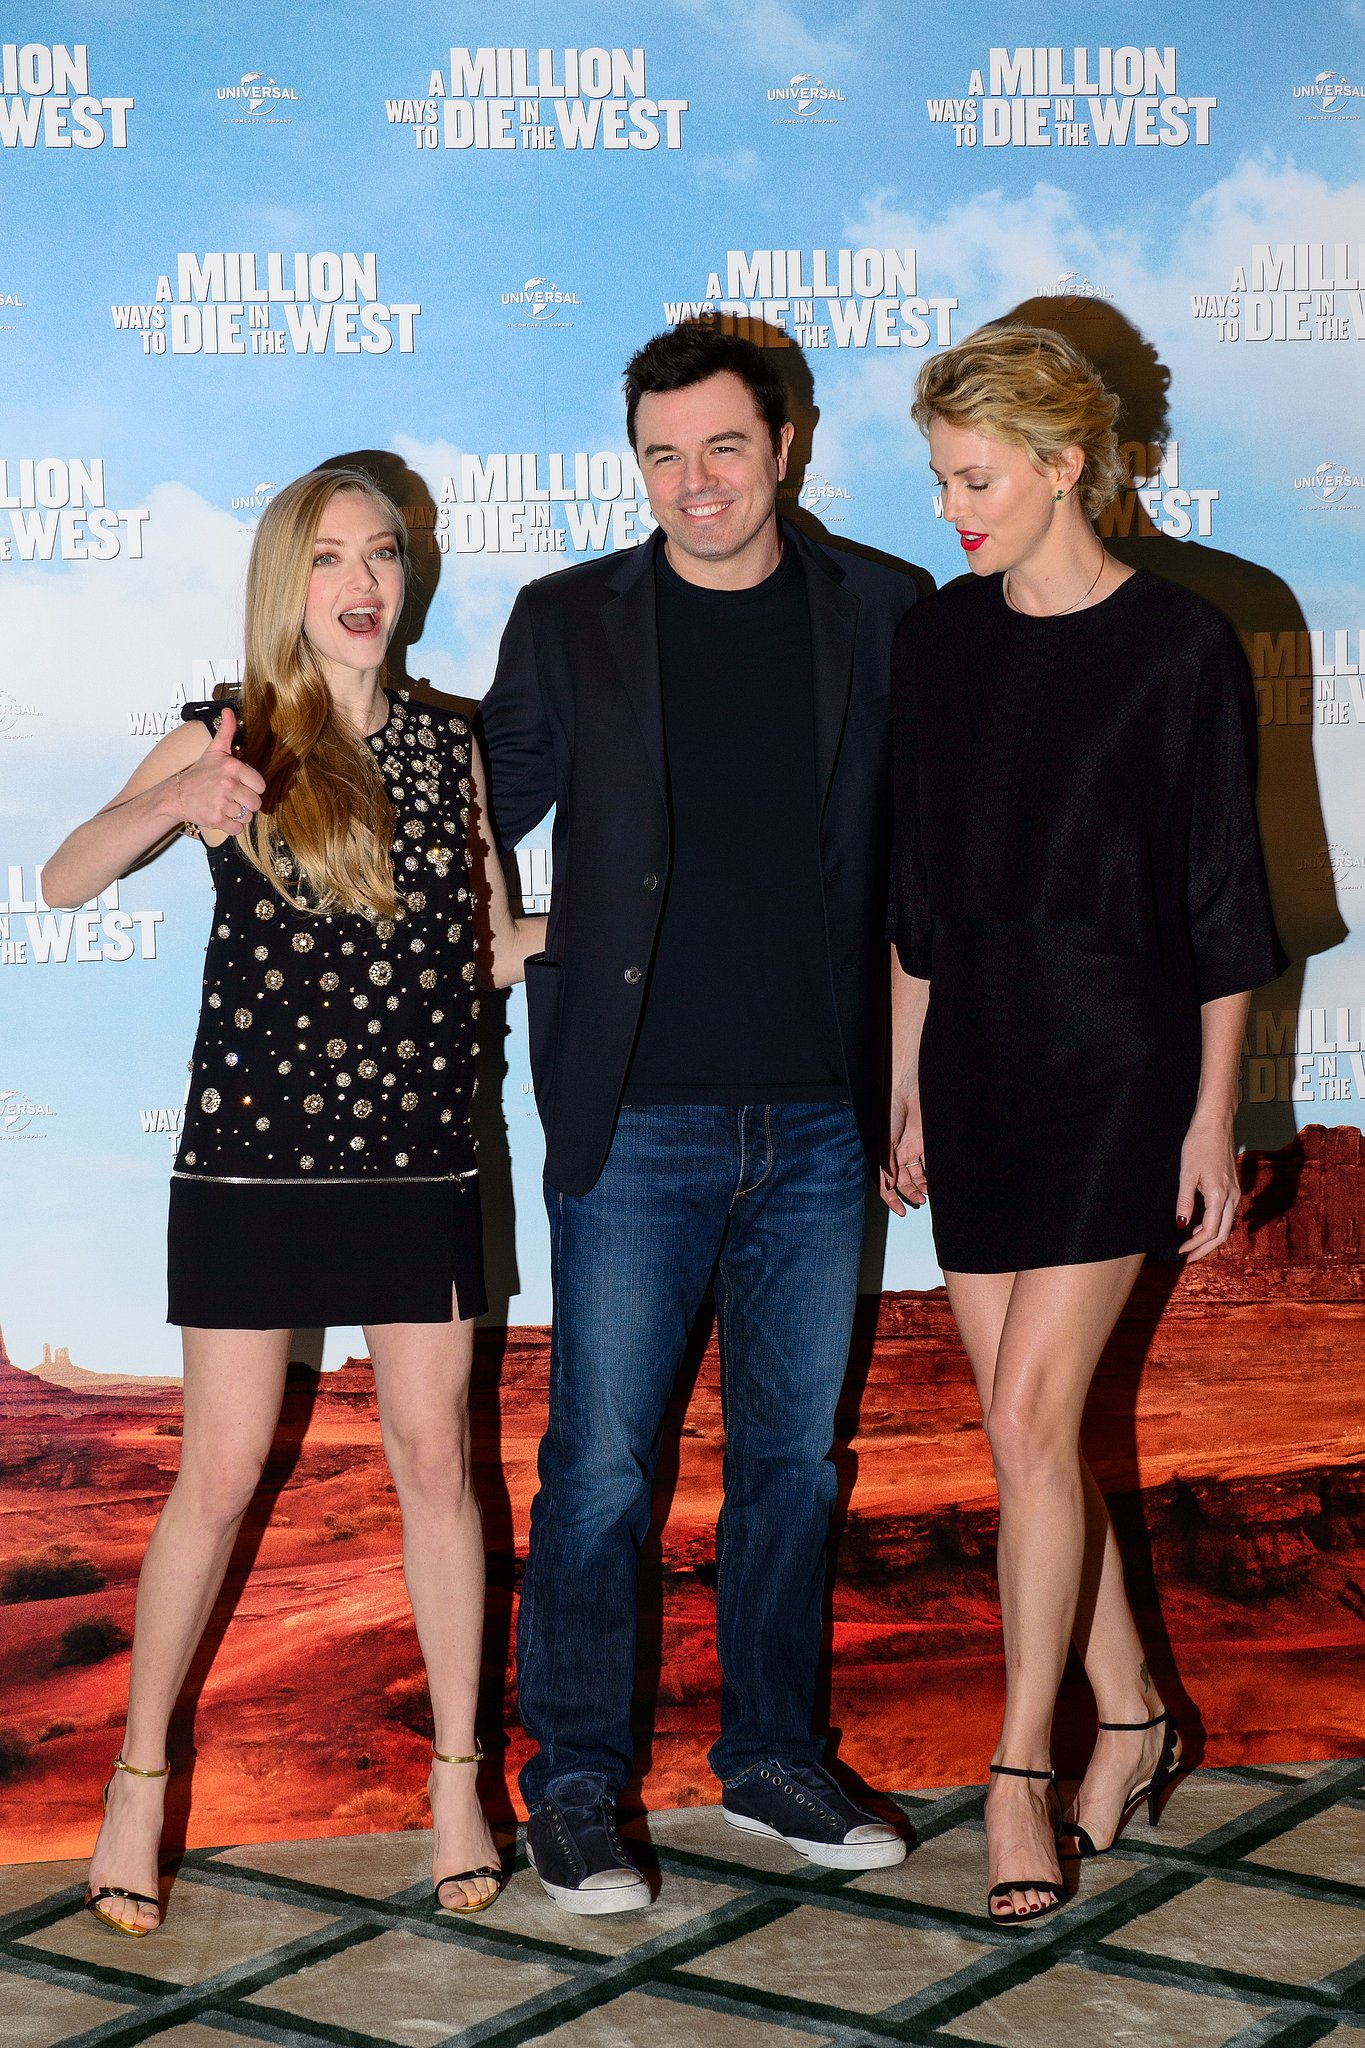 Amanda Seyfried got goofy at the A Million Ways to Die in the West premiere with costars Seth MacFarlane and Charlize Theron in London on Tuesday.